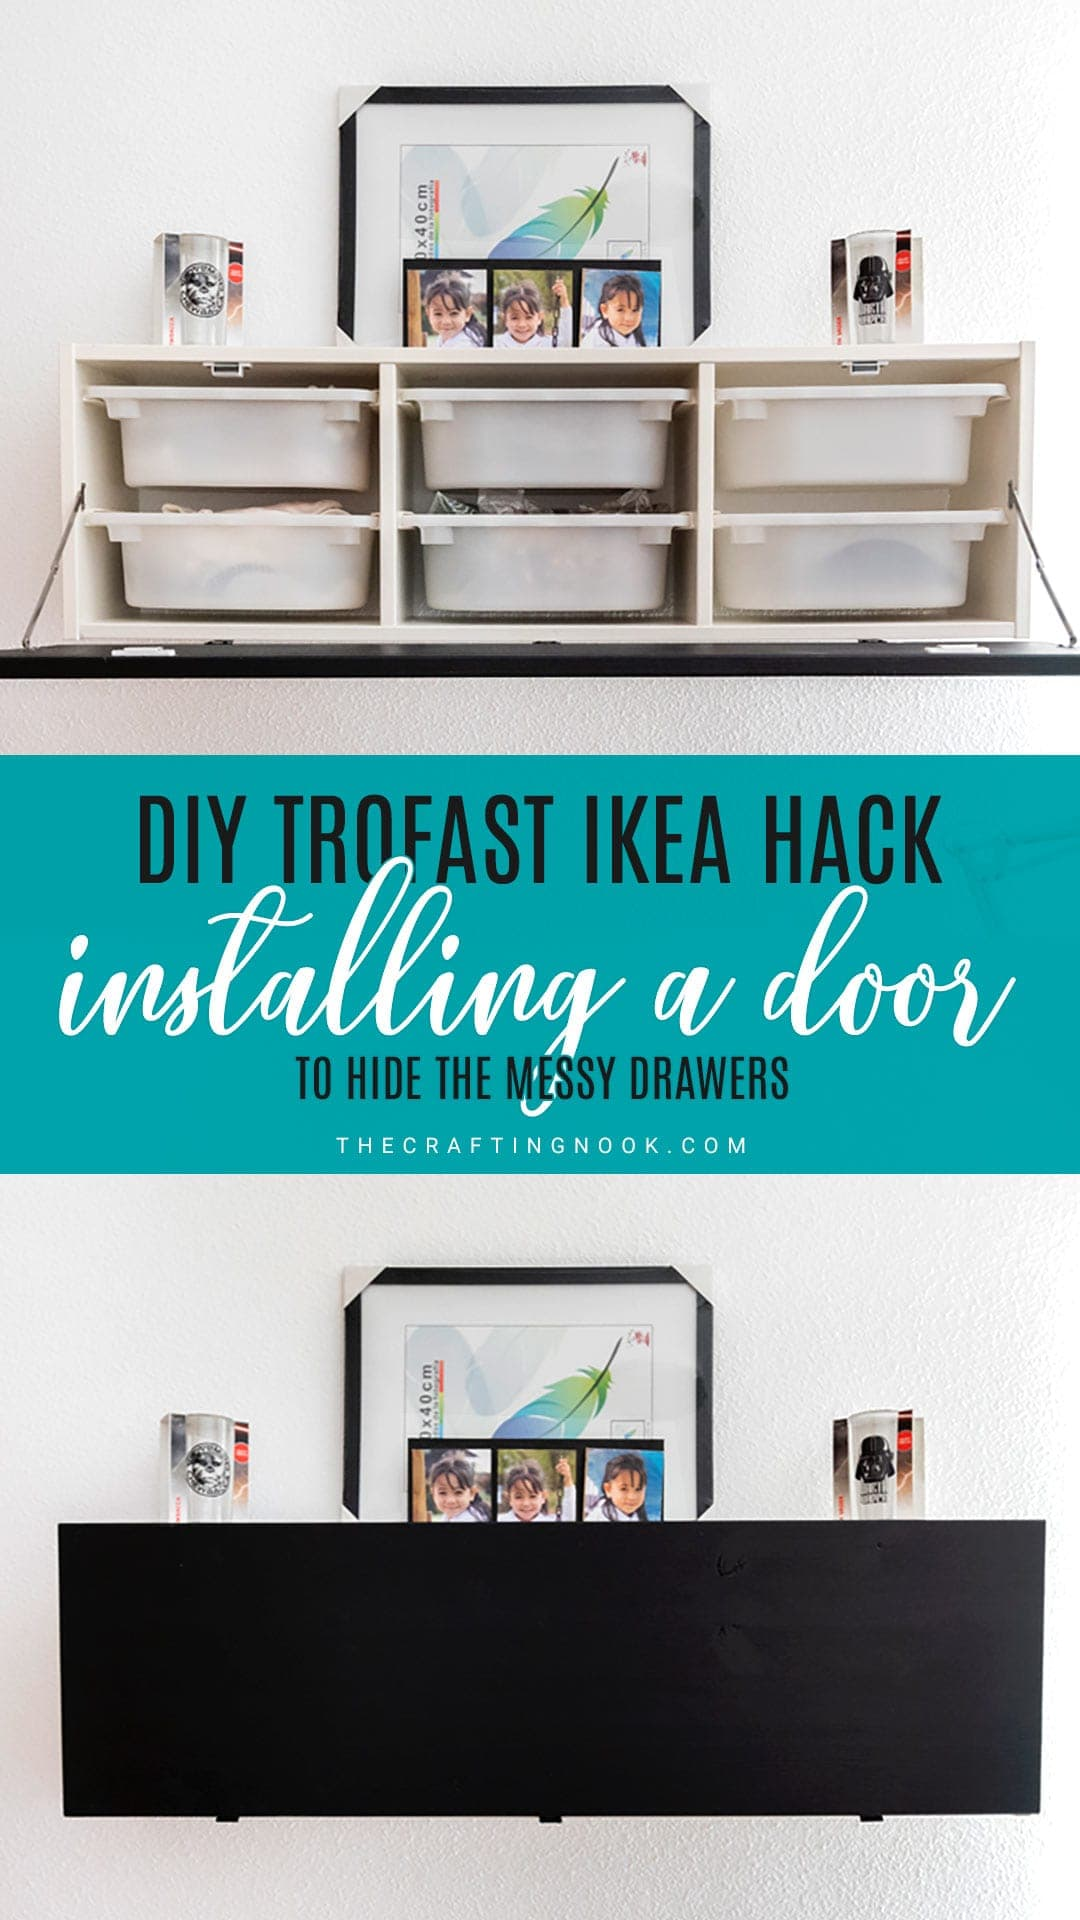 DIY Trofast IKEA Kack: Installing a door to hide the messy drawers